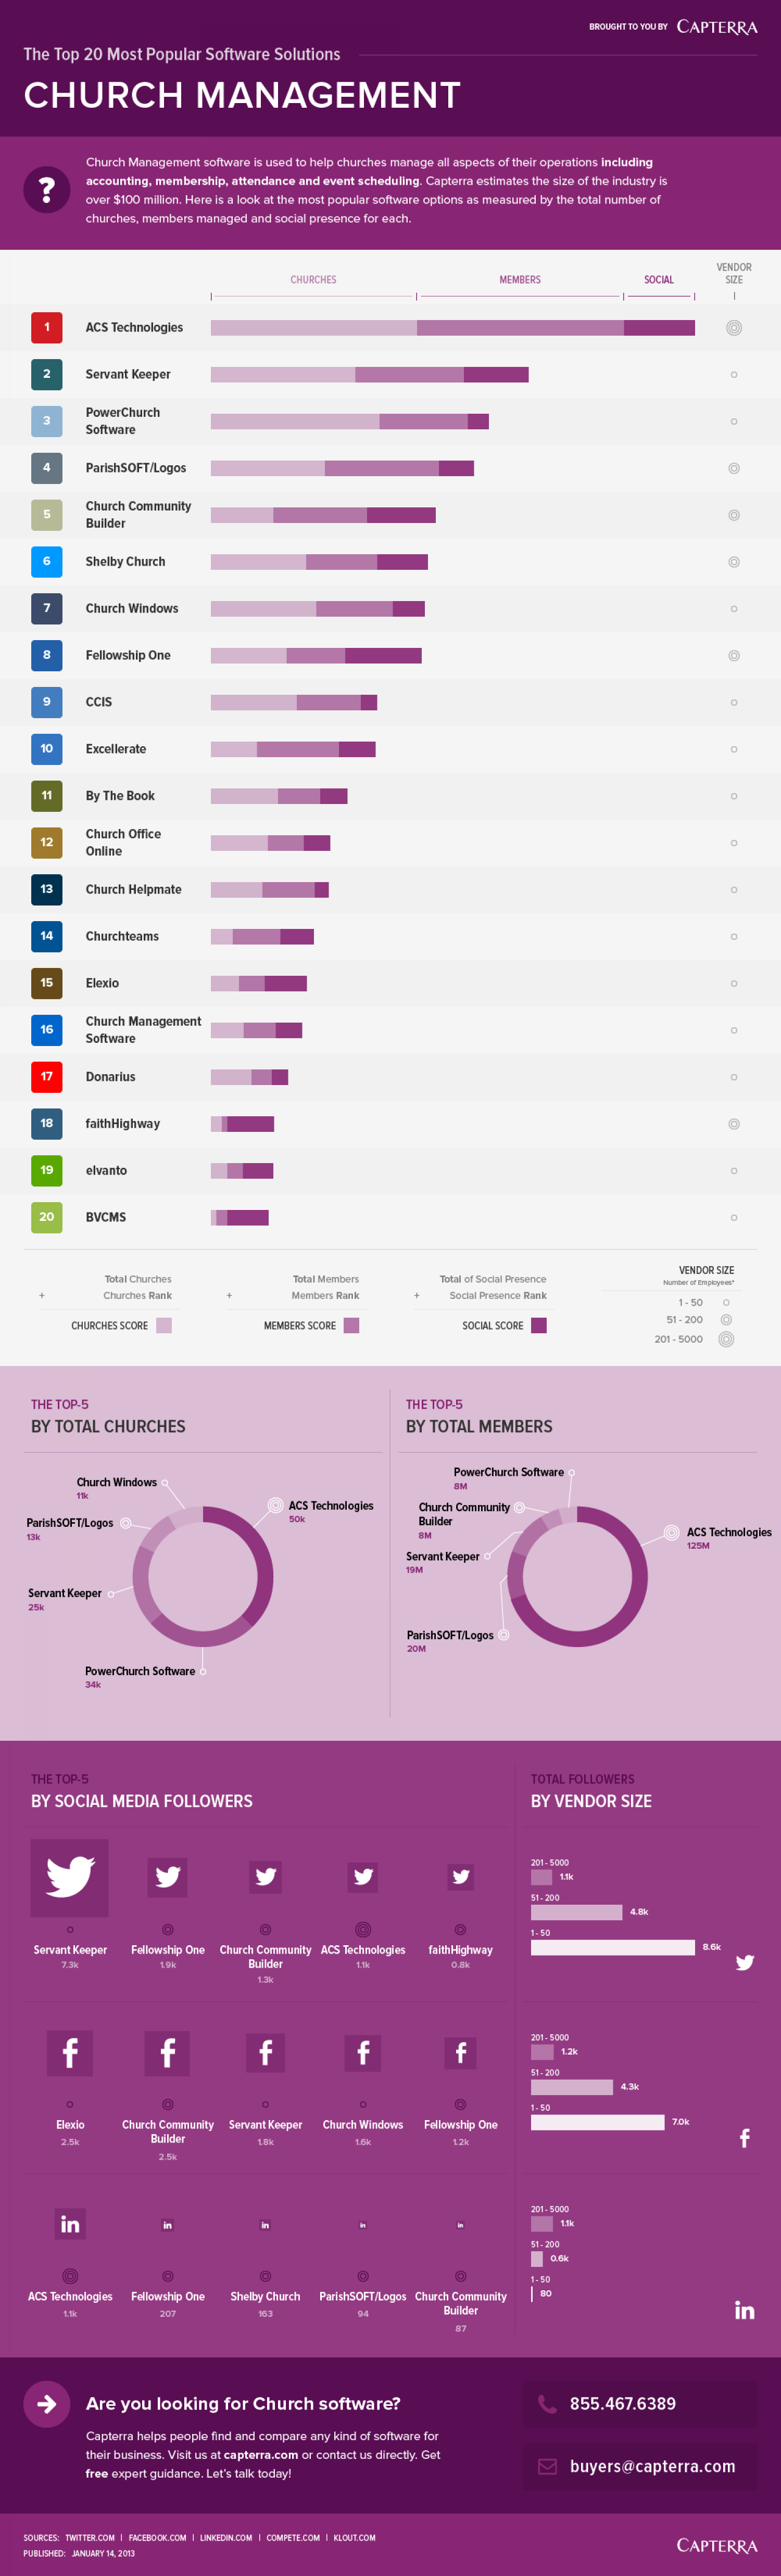 The Top 20 Most Popular Church Management Software Solutions Infographic